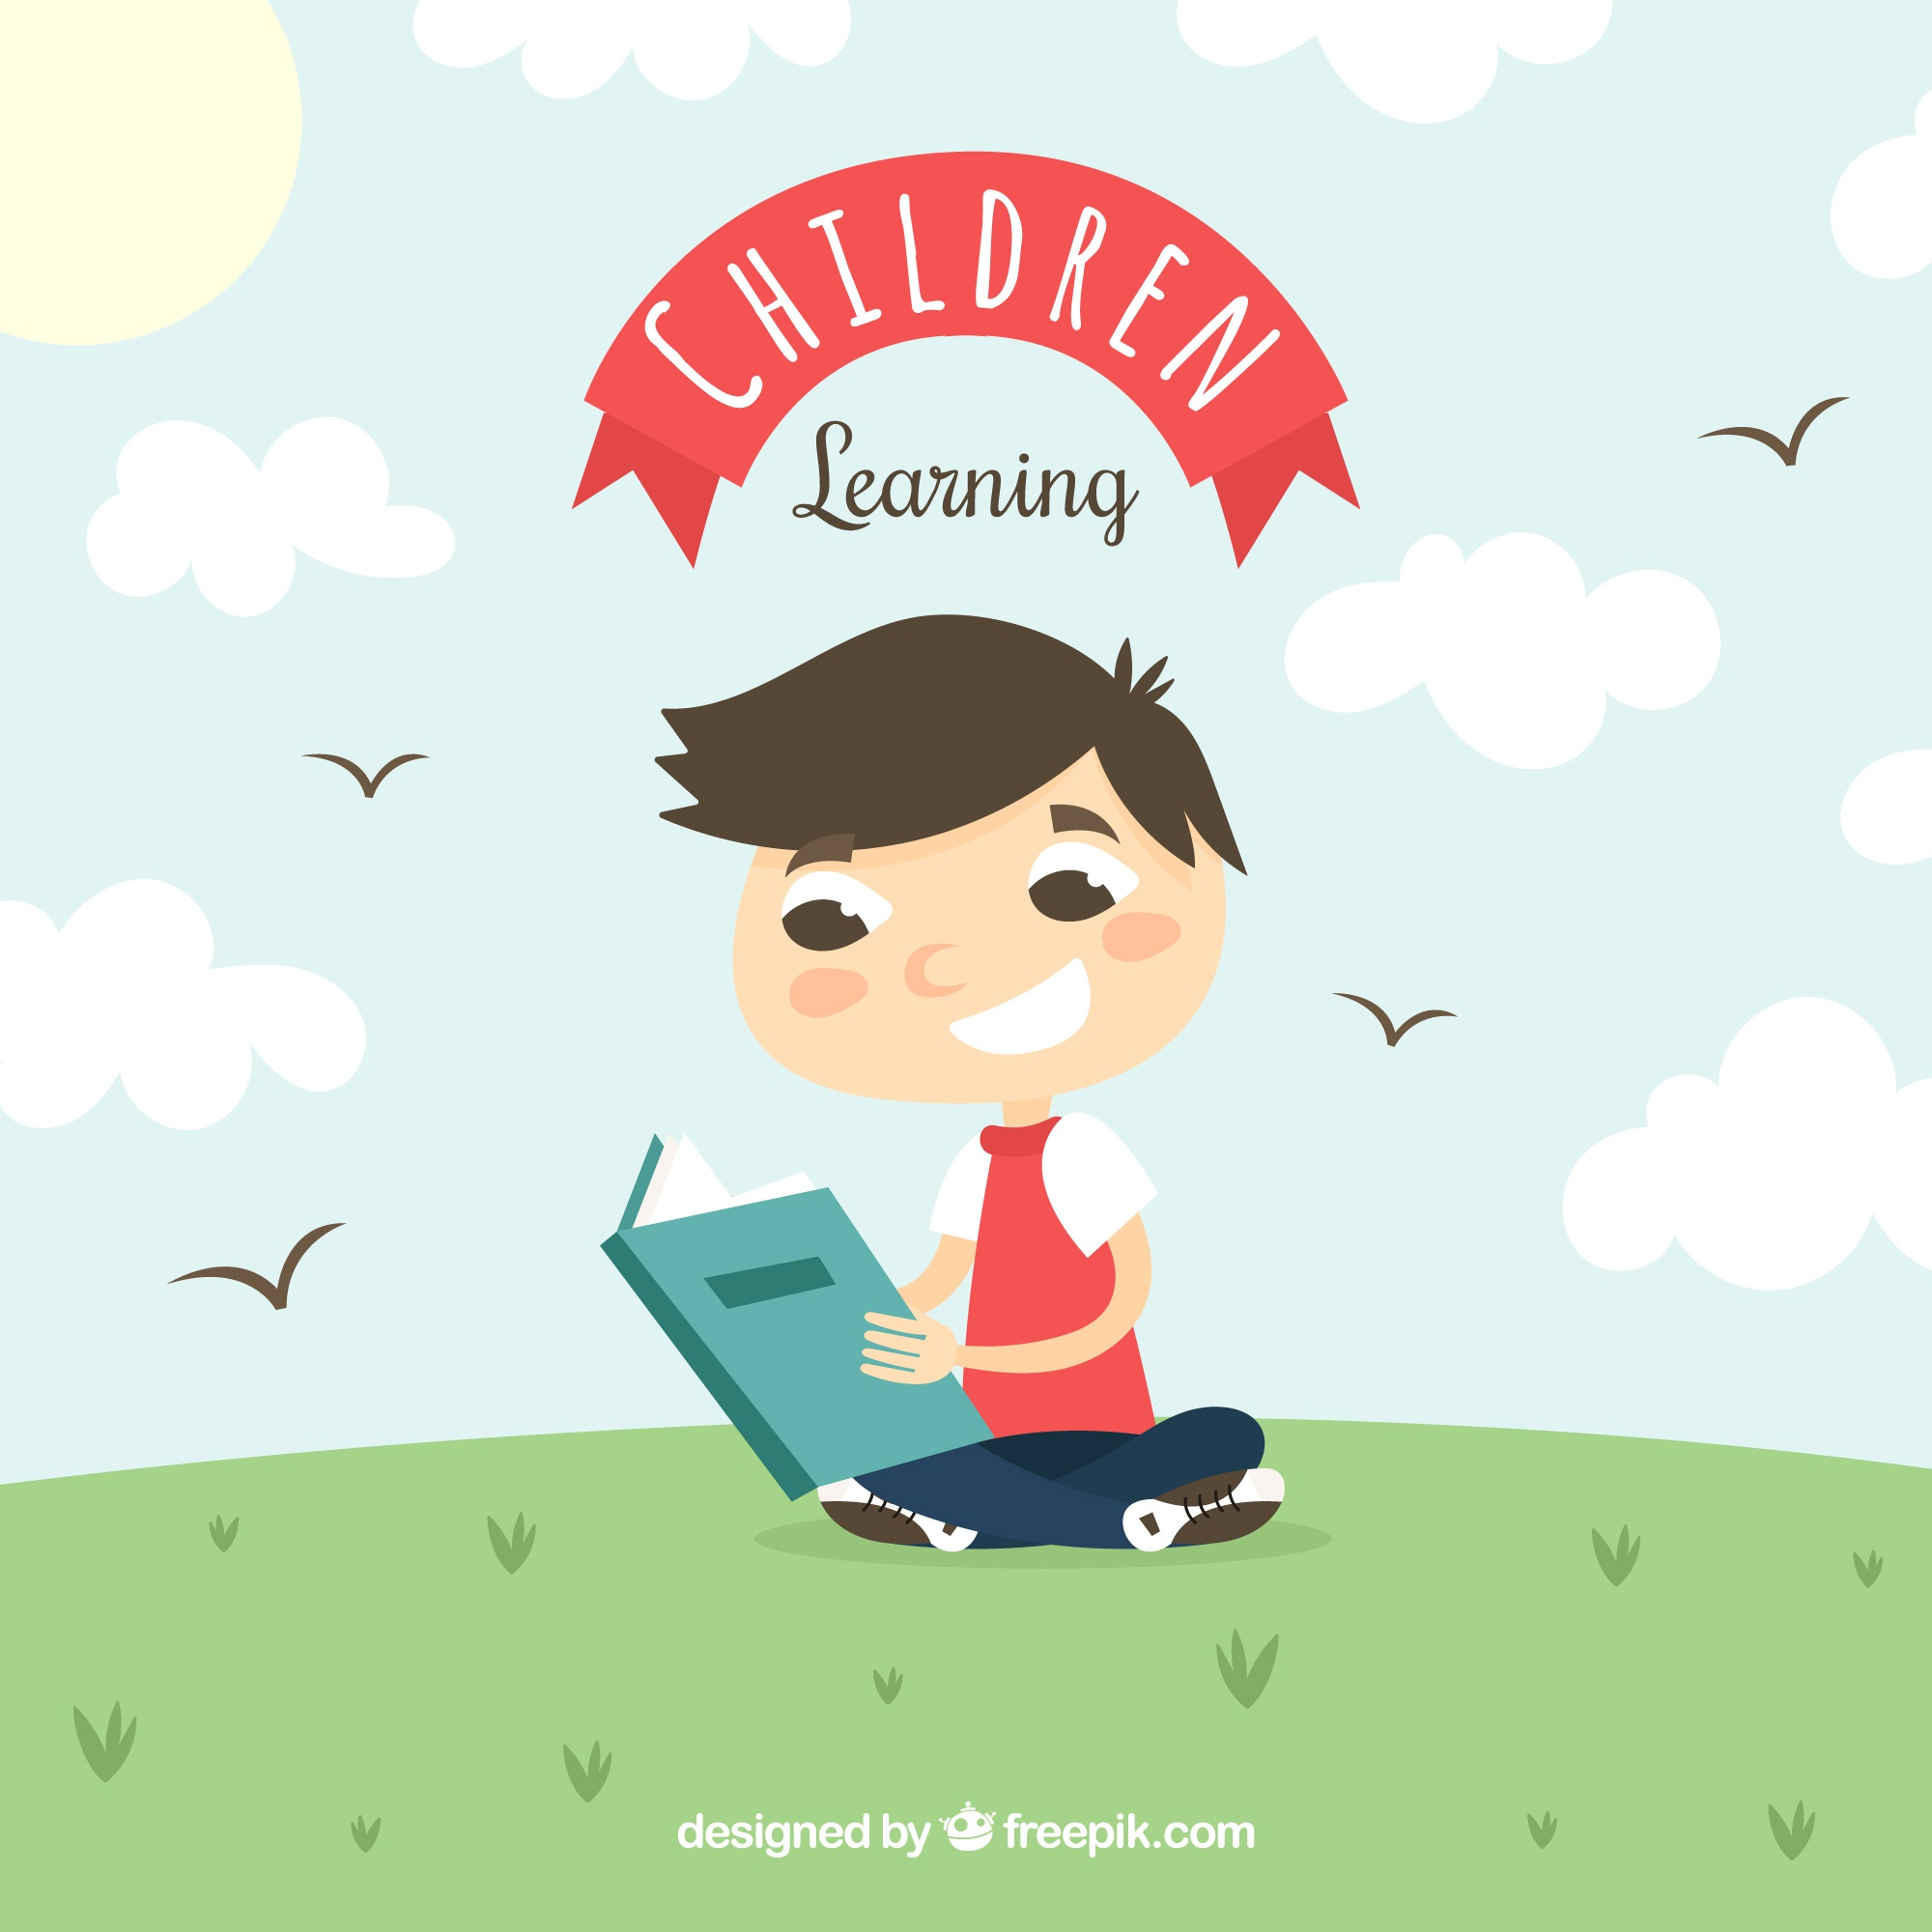 Smiling boy reading outdoors